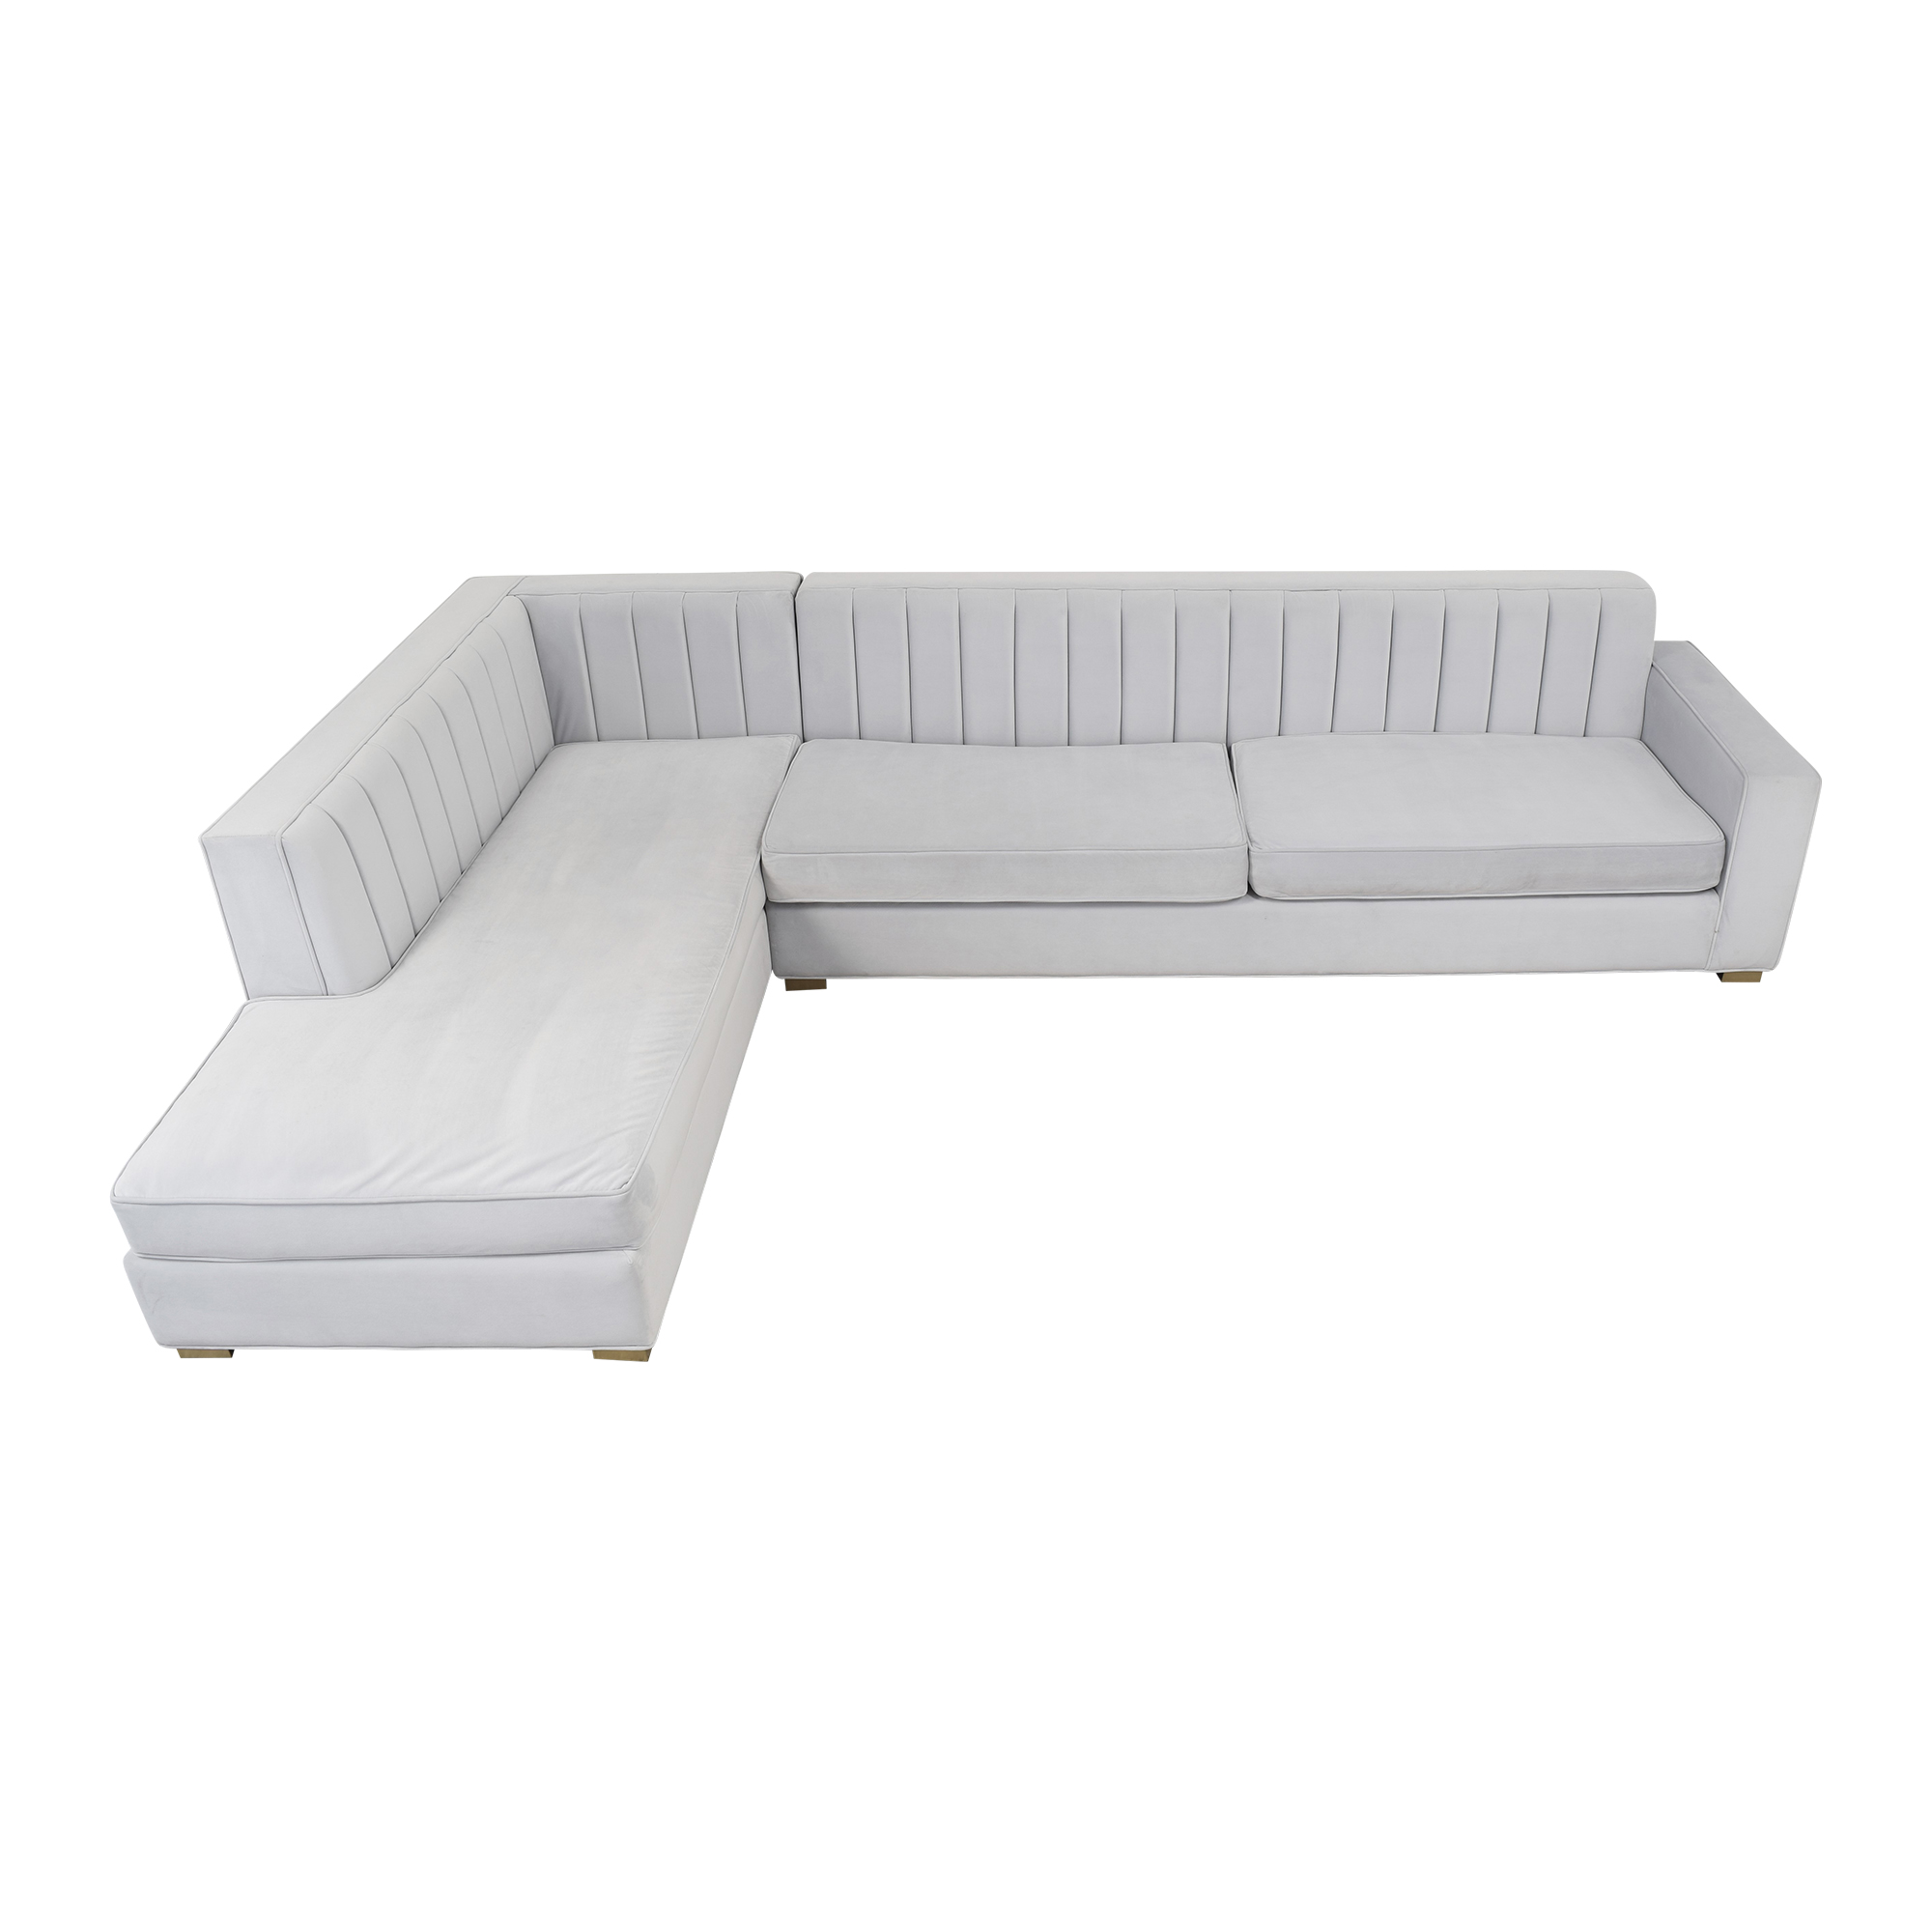 buy ModShop ModShop Sectional Sofa with Chaise online